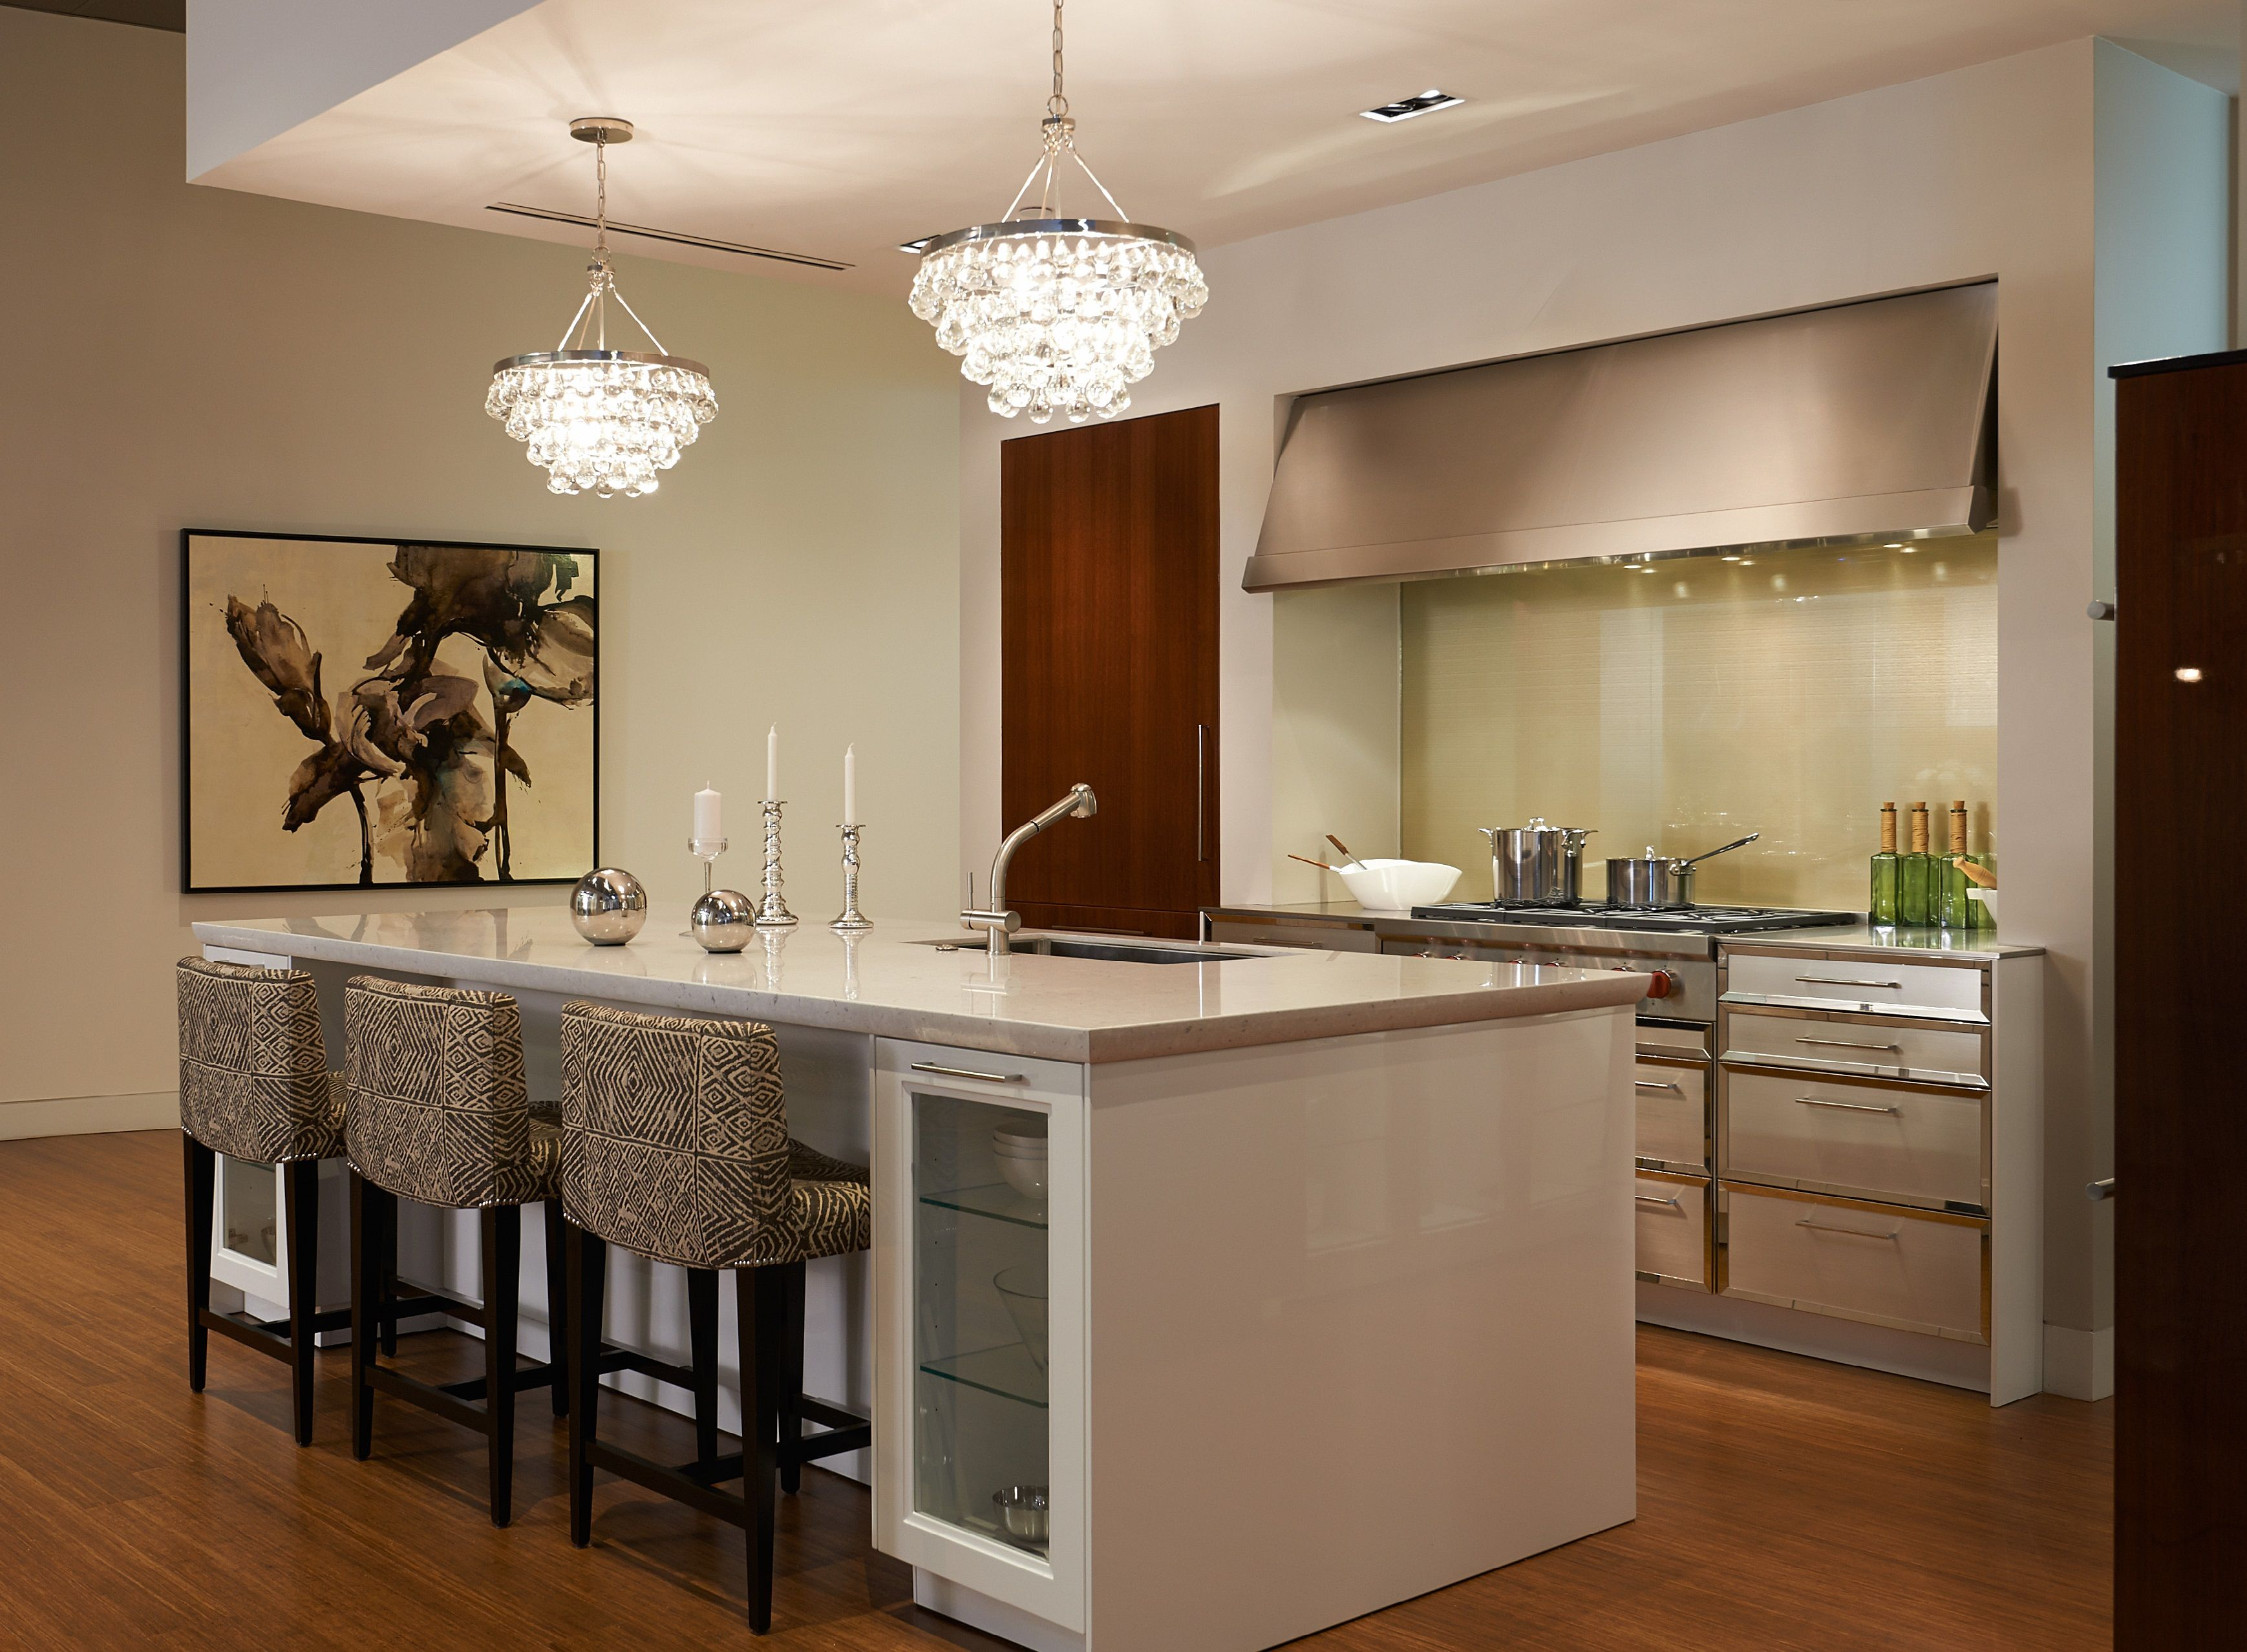 Kitchen Display Contemporary Kitchen Display At The Fretz Corporation Showroom